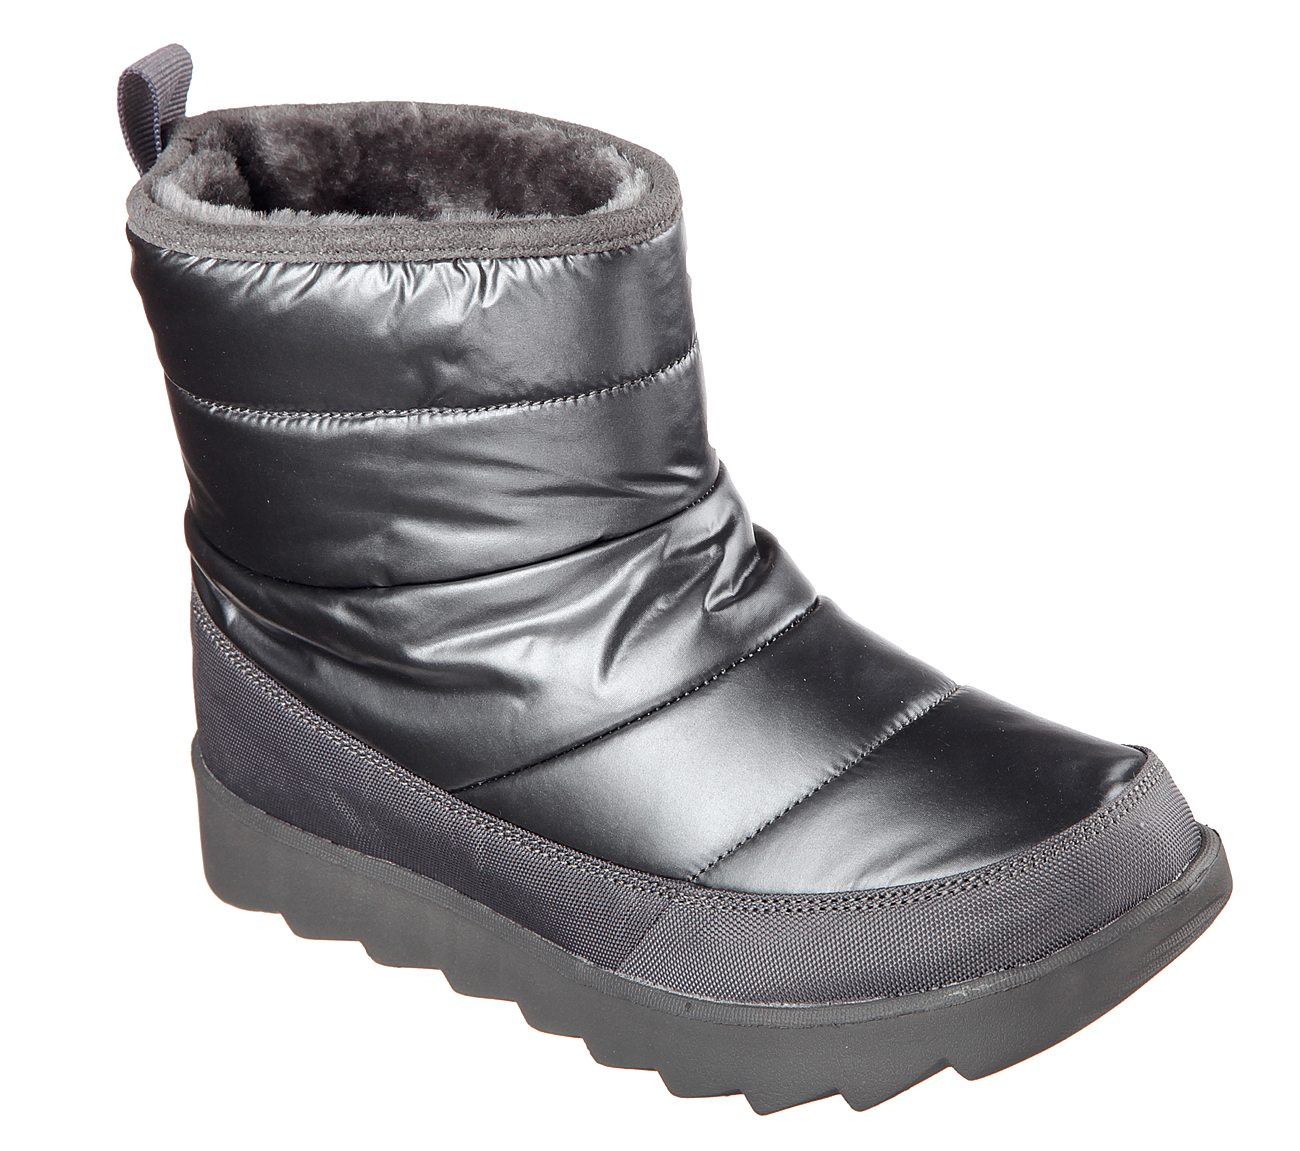 Buy SKECHERS Bobs Mementos - Angel Face BOBS Shoes only  37.00 7db33048c05